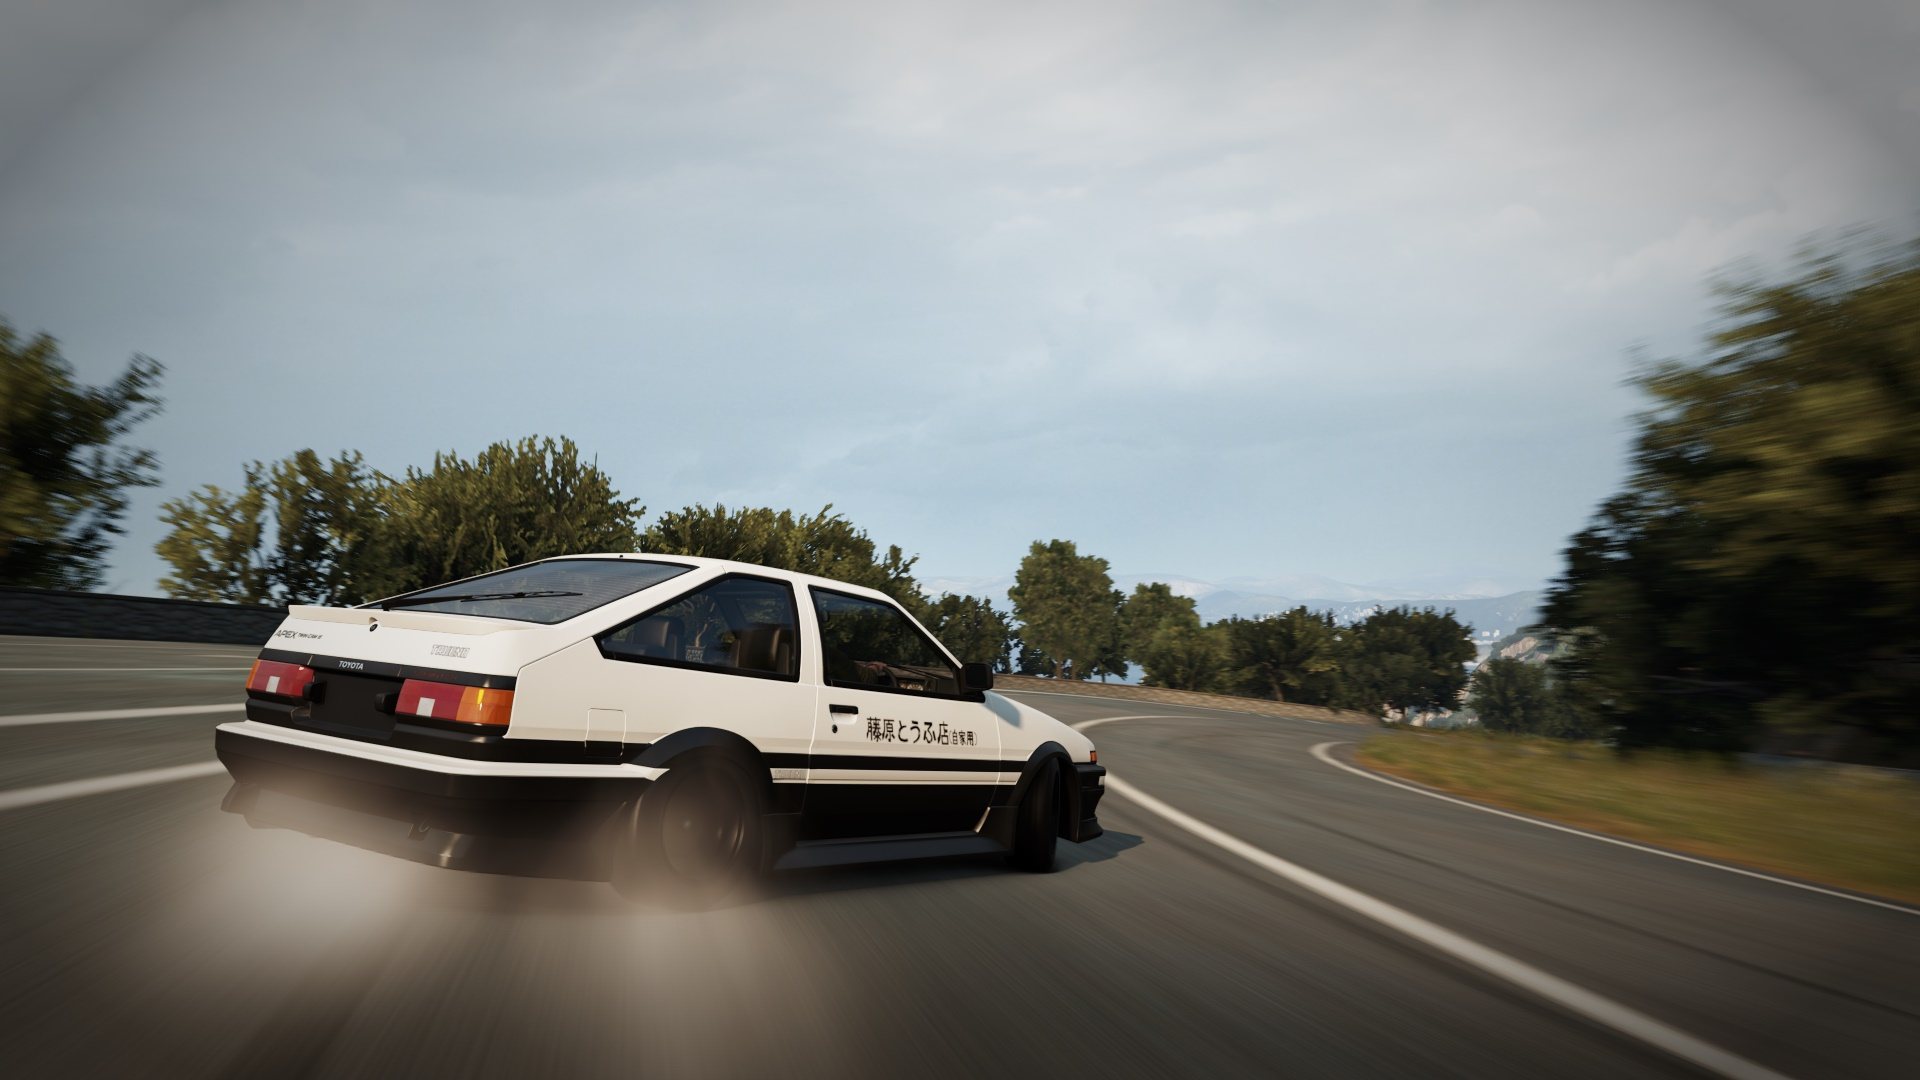 Initial d spec ae86 in forza horizon 2 - Ae86 initial d wallpaper ...